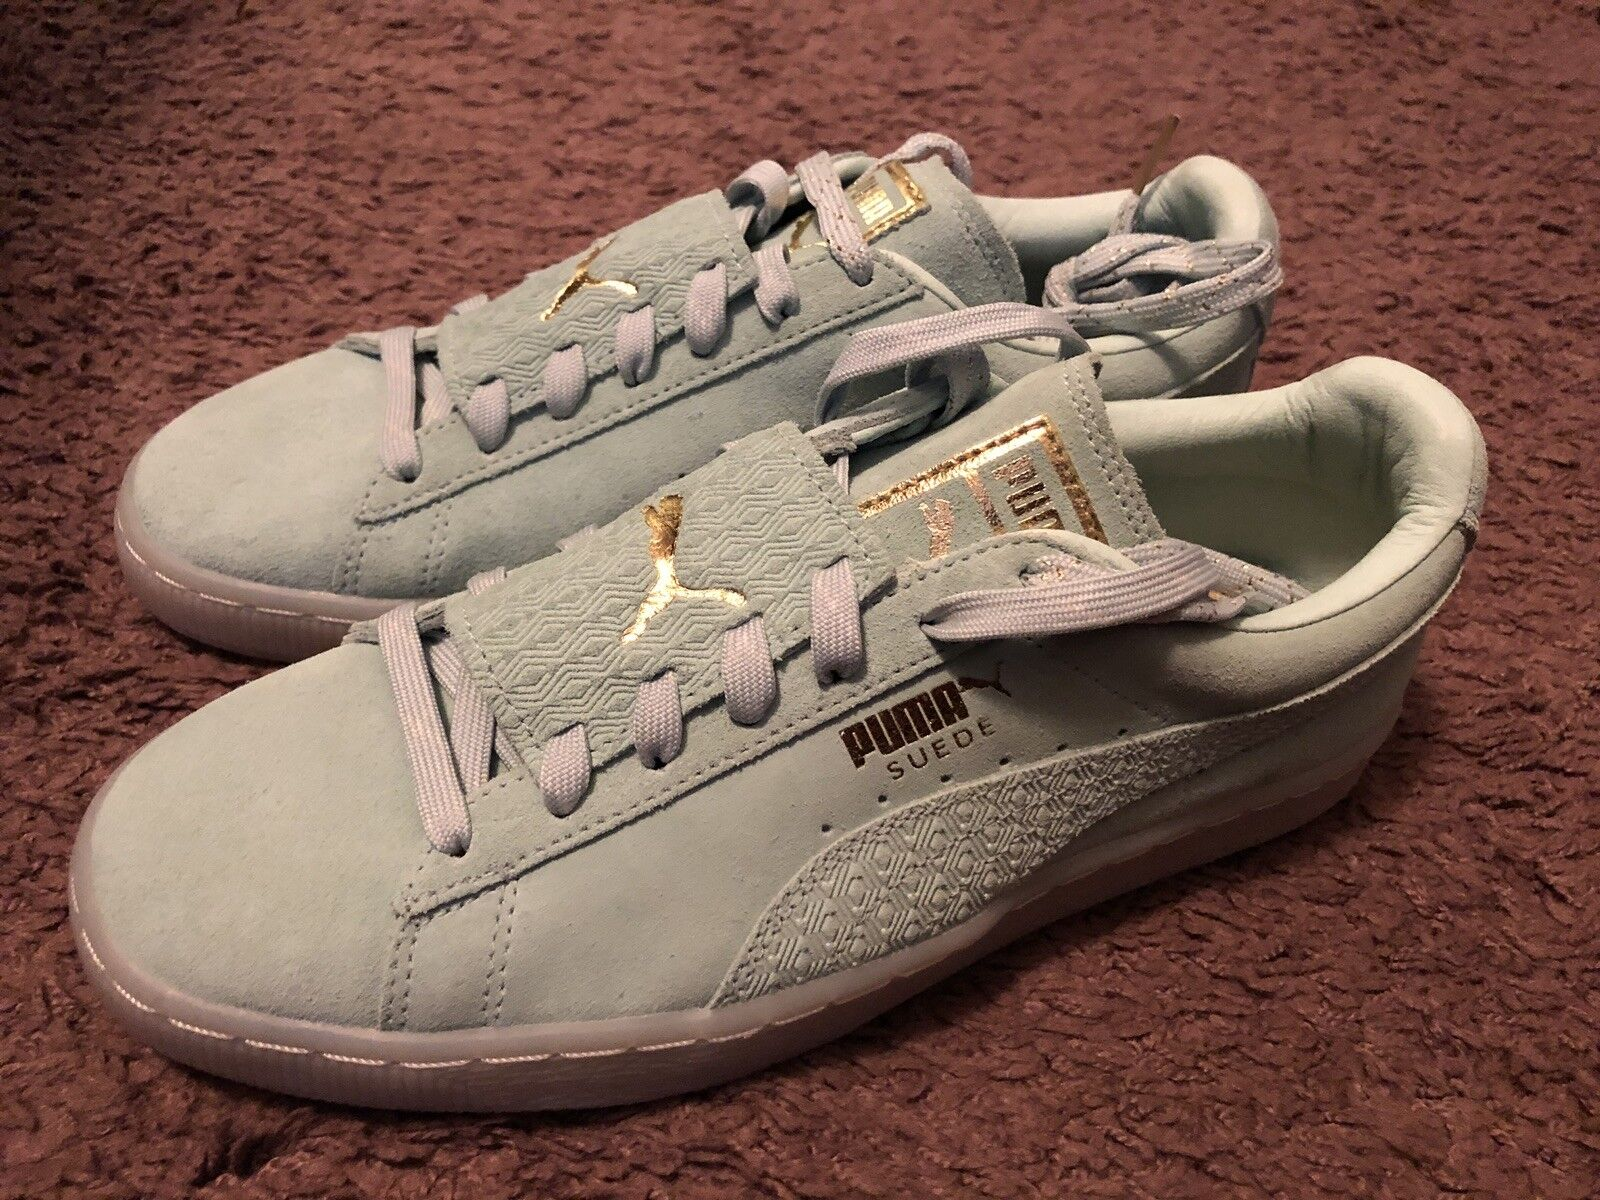 Puma Mint Green Cream Suede Retro Classic Embossed Foil Sneakers Comfortable Comfortable and good-looking